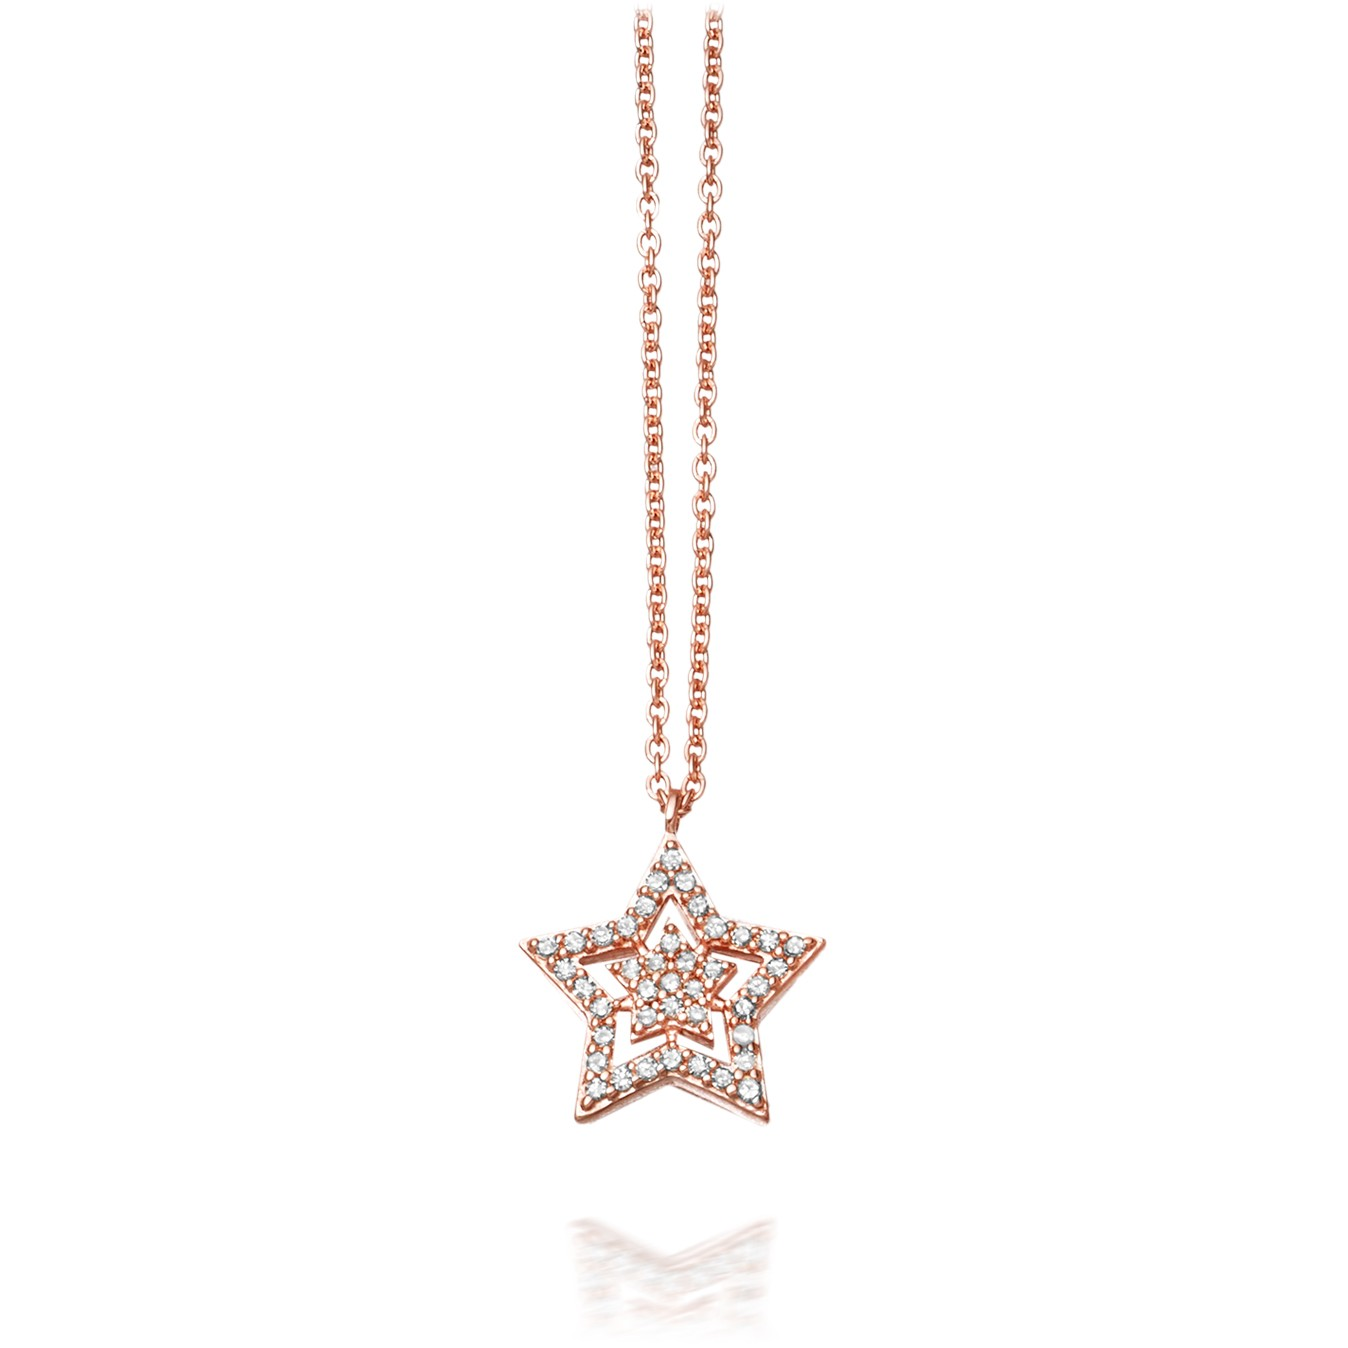 Astley Clarke Super Star Pendant - British luxury jewellery - UK style blog